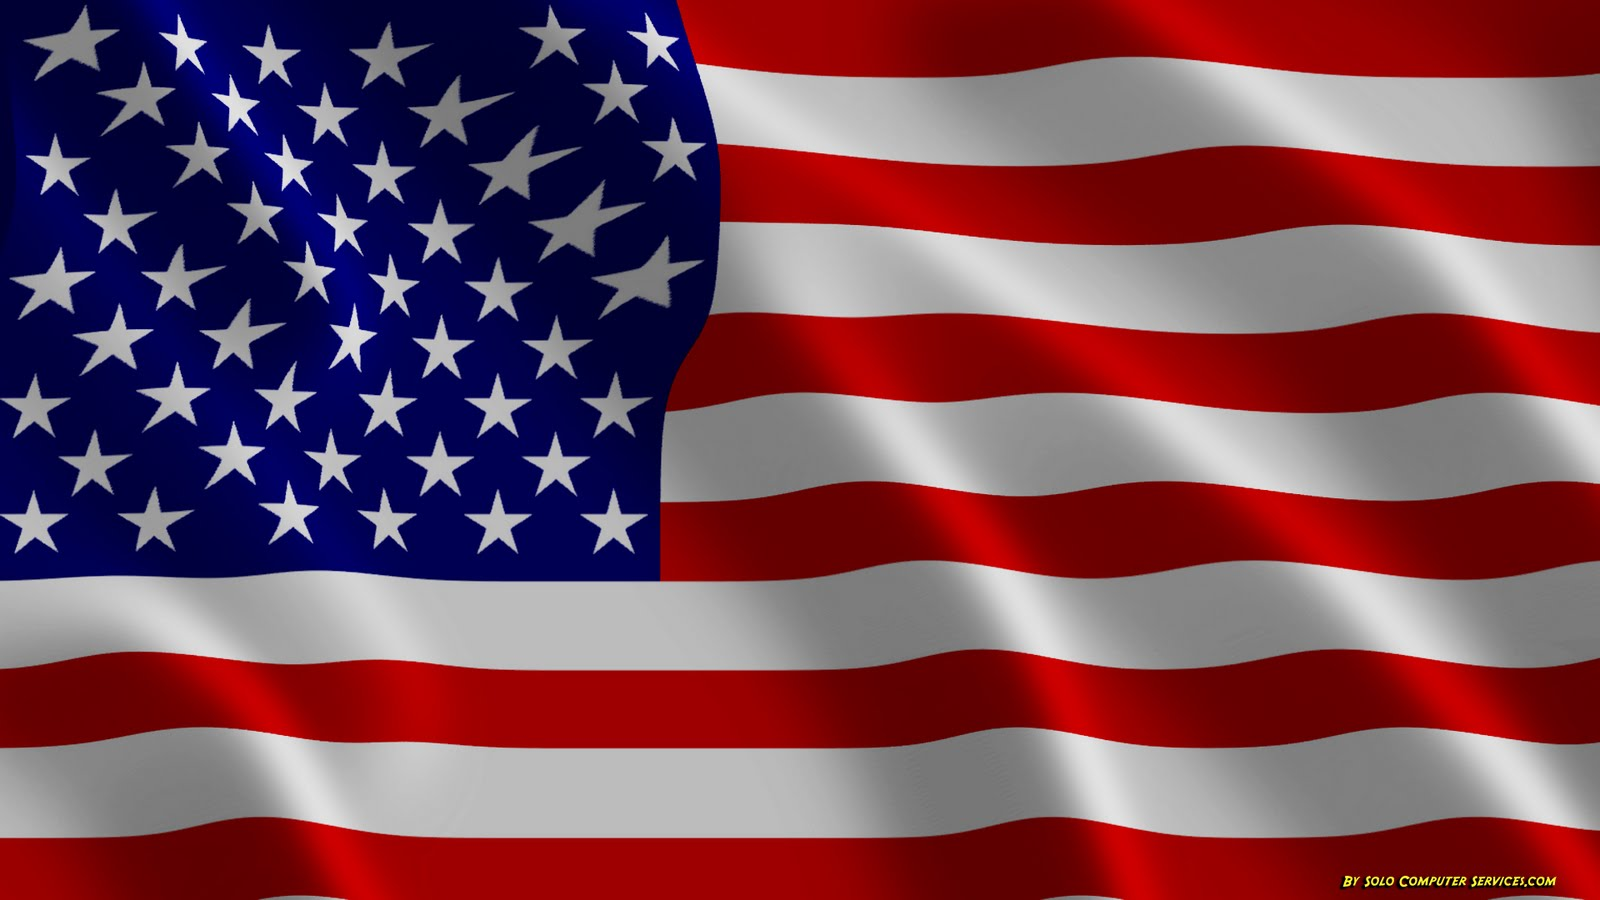 usa wallpaper,flag of the united states,flag,flag day (usa),veterans day,independence day